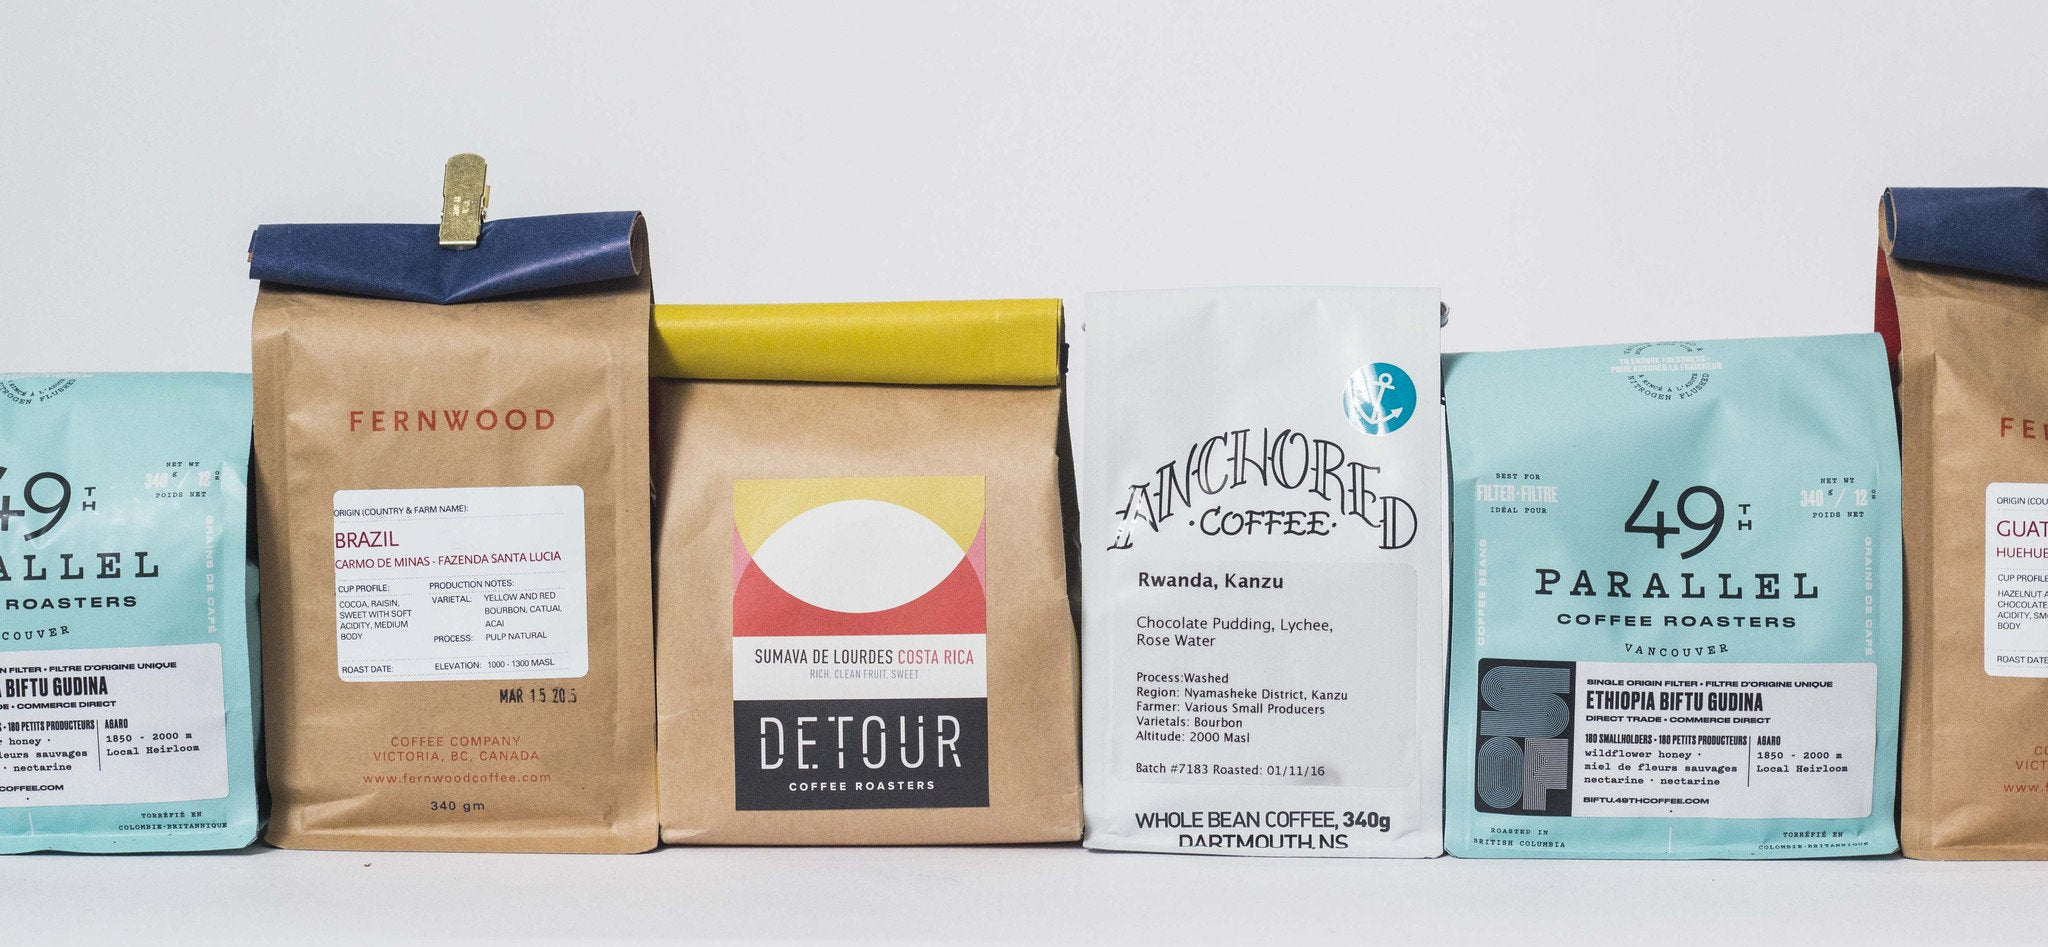 GIFT IT - THE BEST DECAF ROASTS